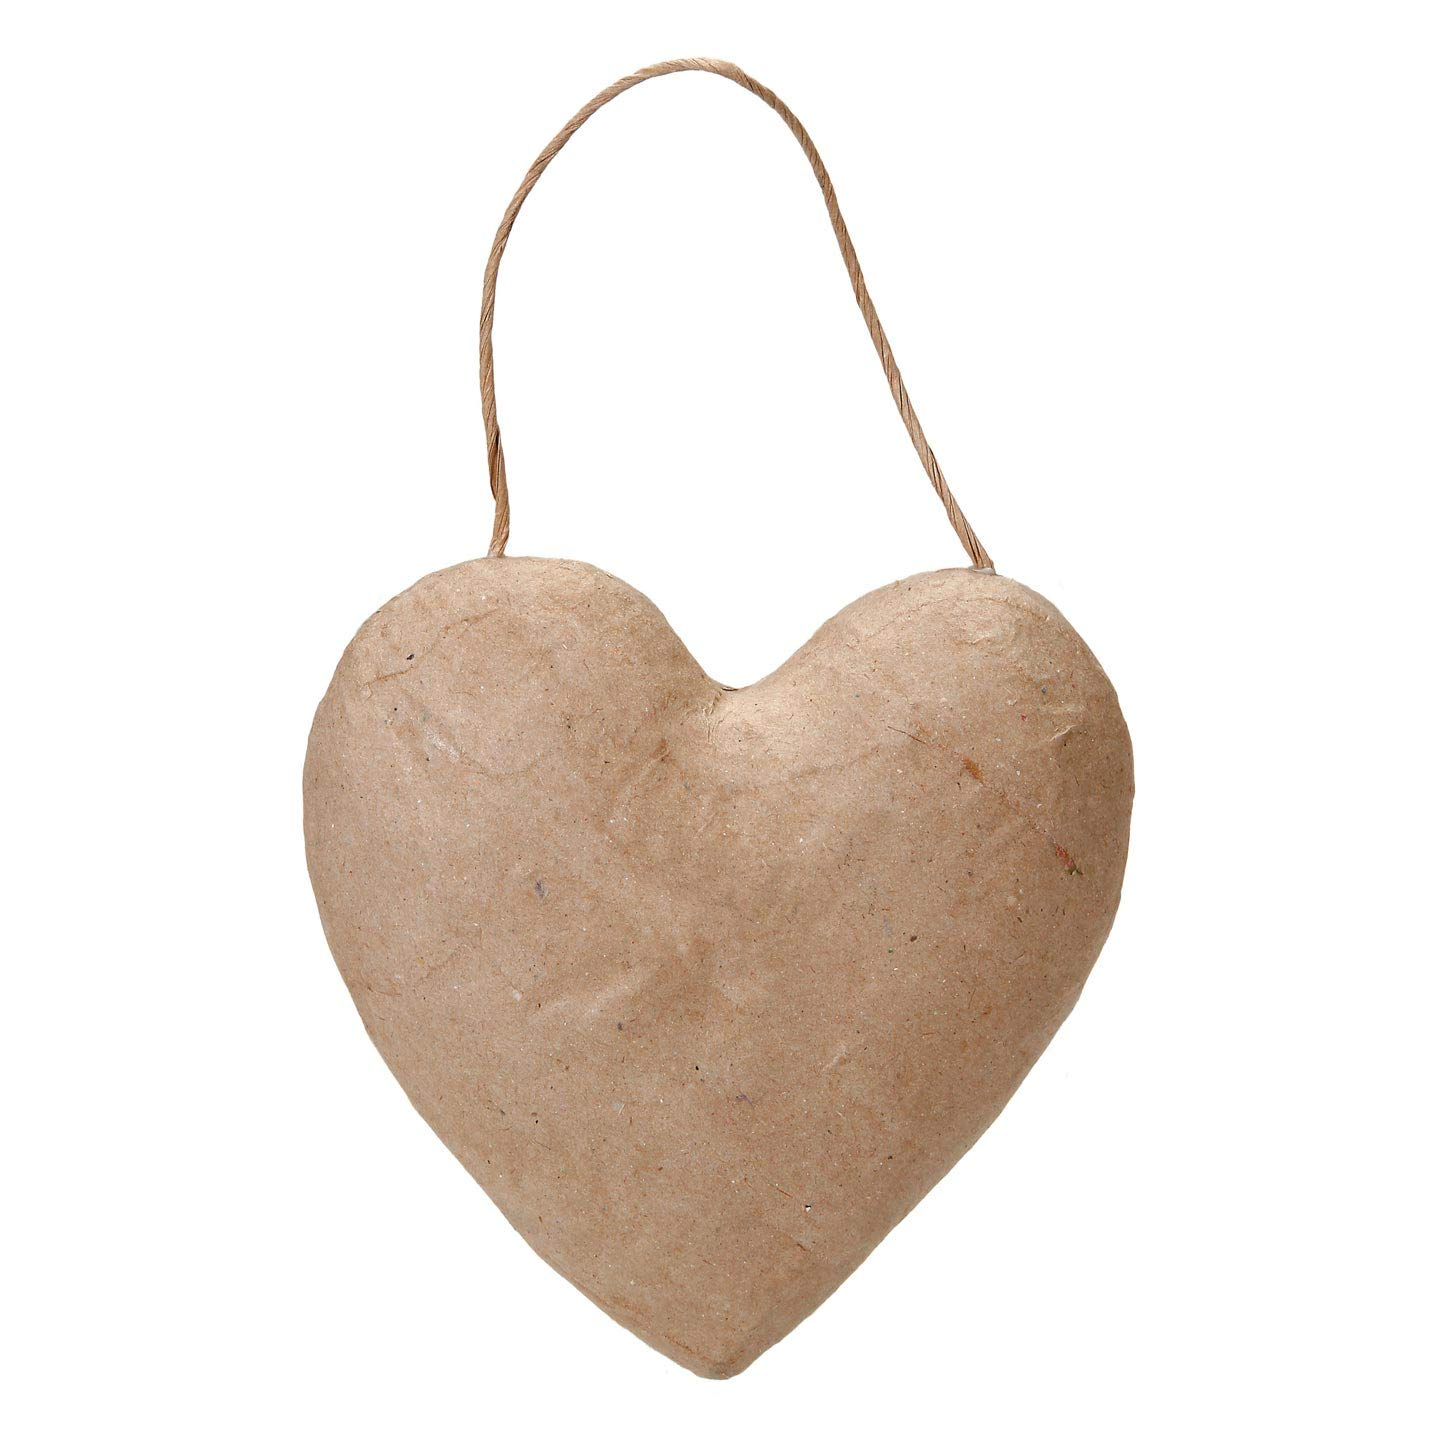 Bulk Buy: Darice DIY Crafts Paper Mache Puffy Heart with String 5-1/2 inches (3-Pack) 2833-44 Inc.